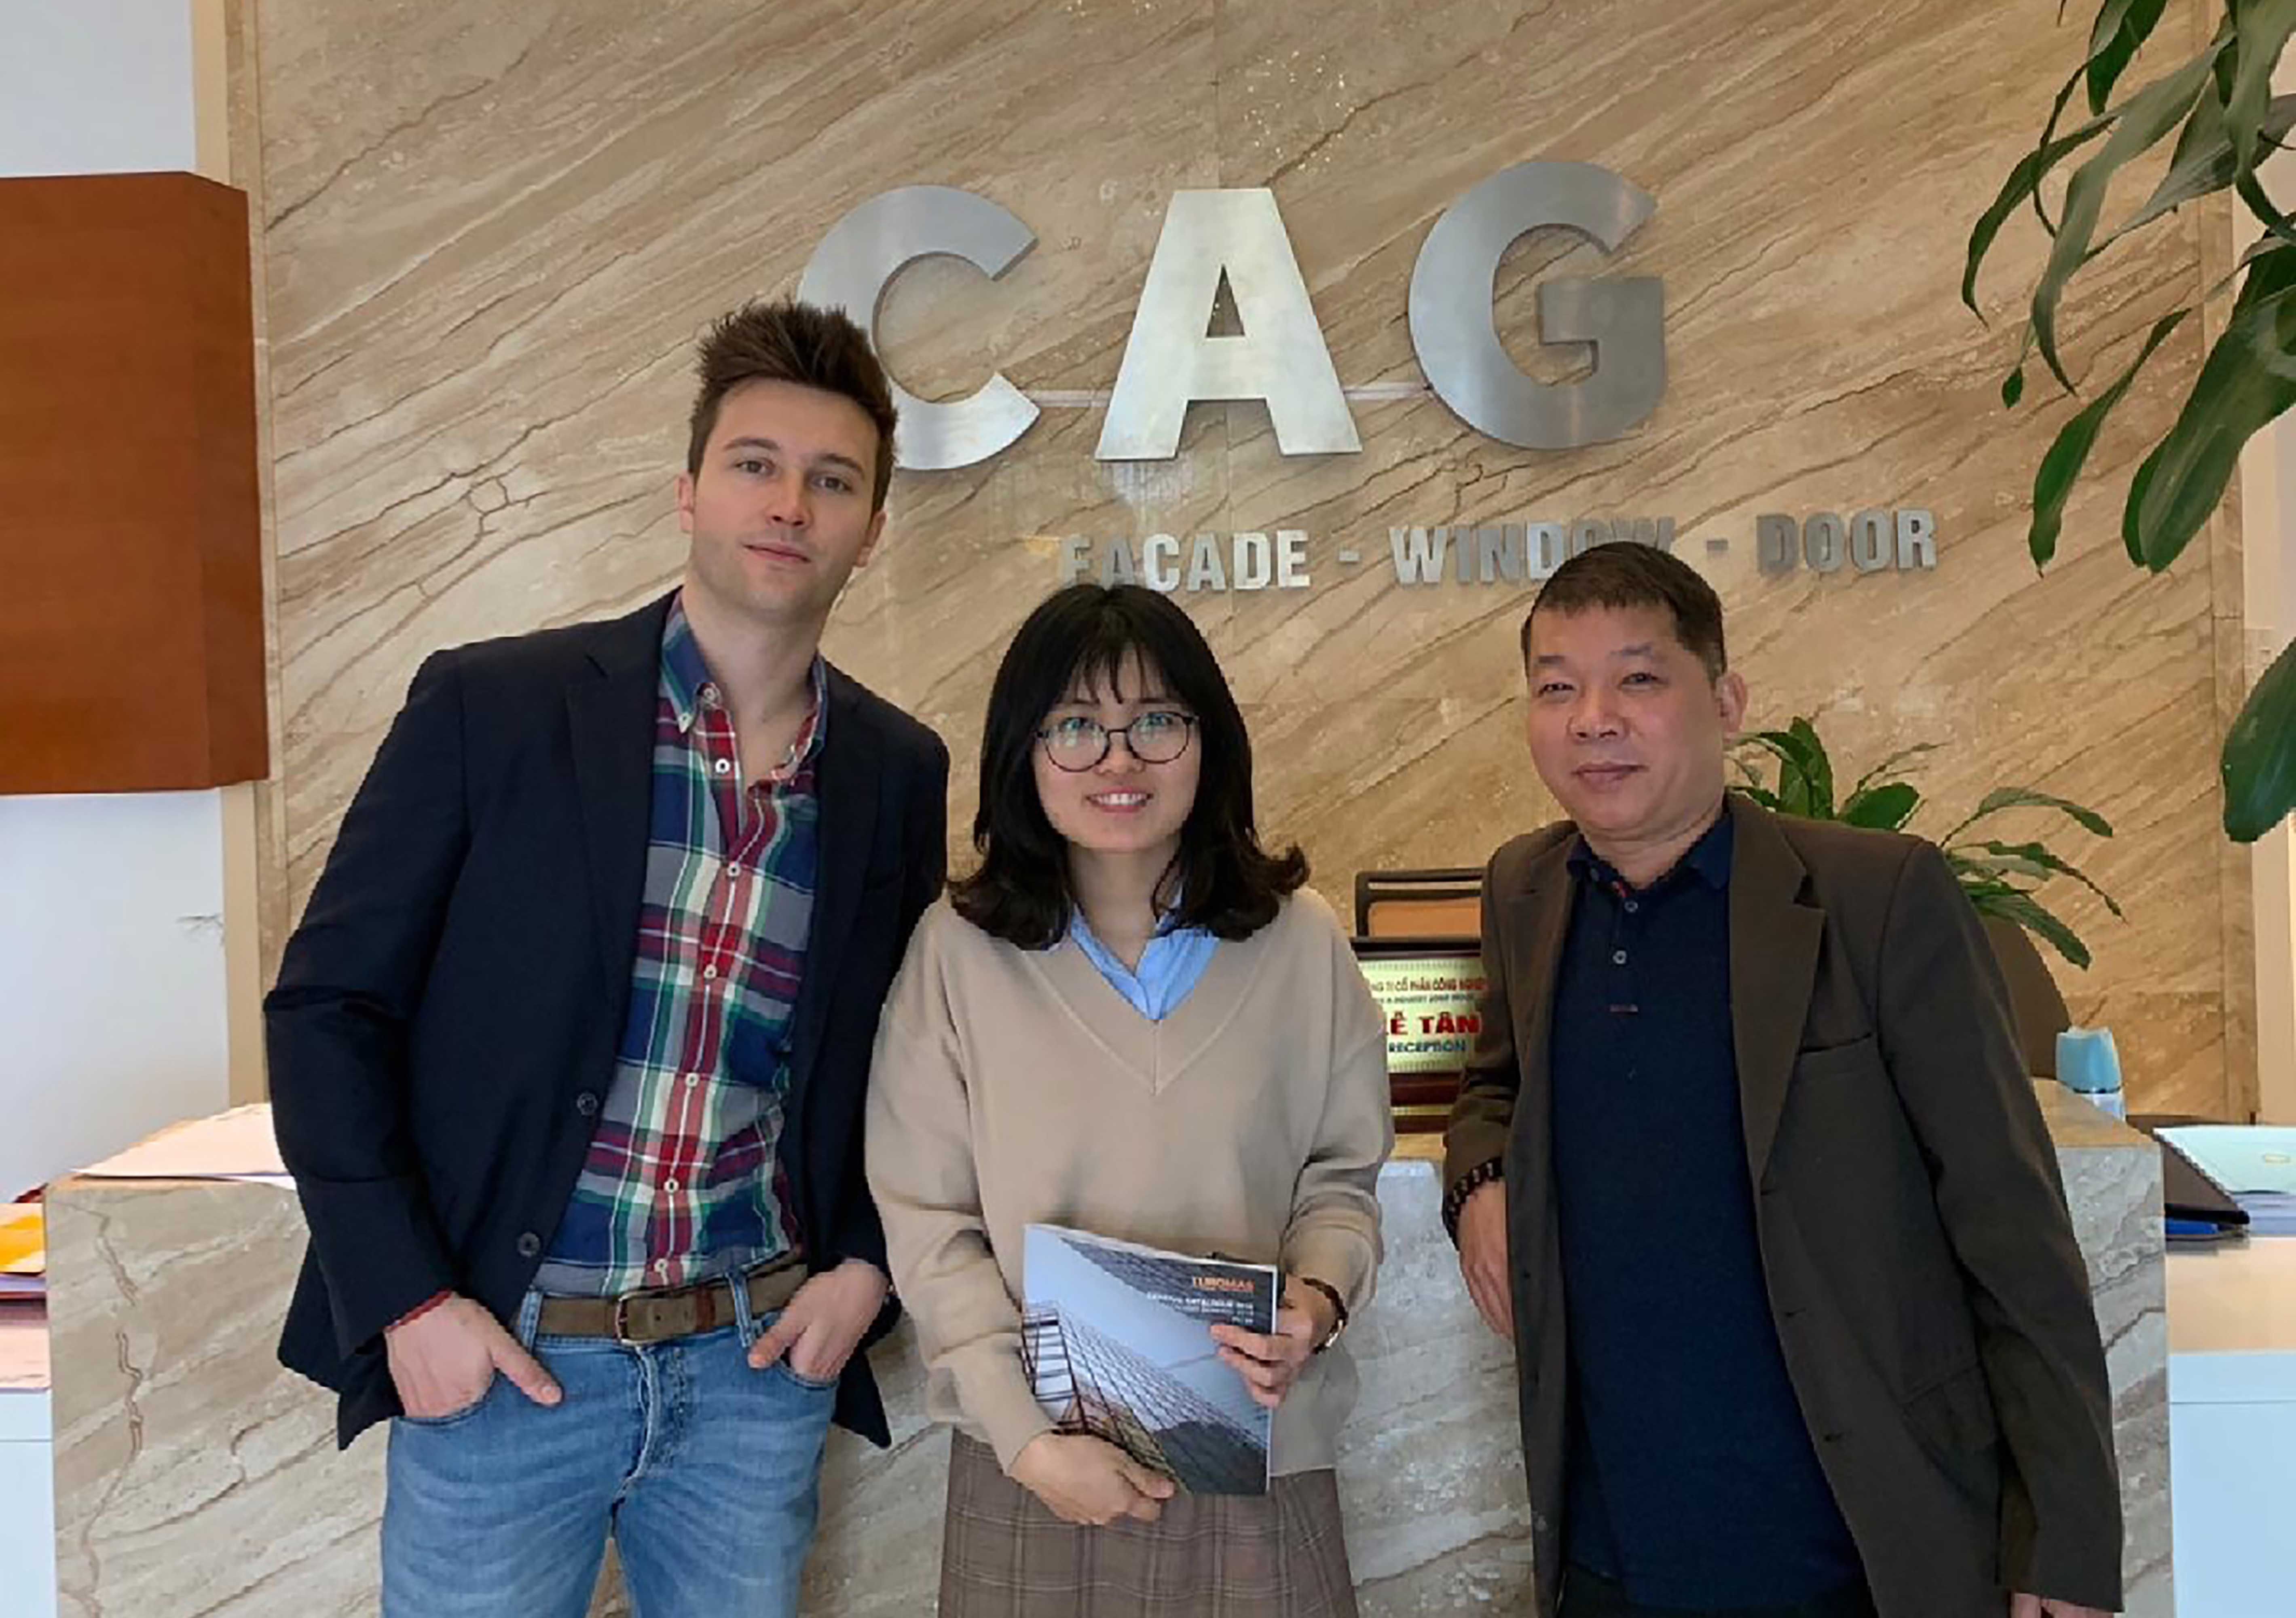 The Vice President of Turomas, Álvaro Tomás, with Michele Minh, CEO of Eurotechcorp, Turomas distributor in Vietnam. At the center, purchasing manager of the company CAG, one of the leading glass processors in the country.